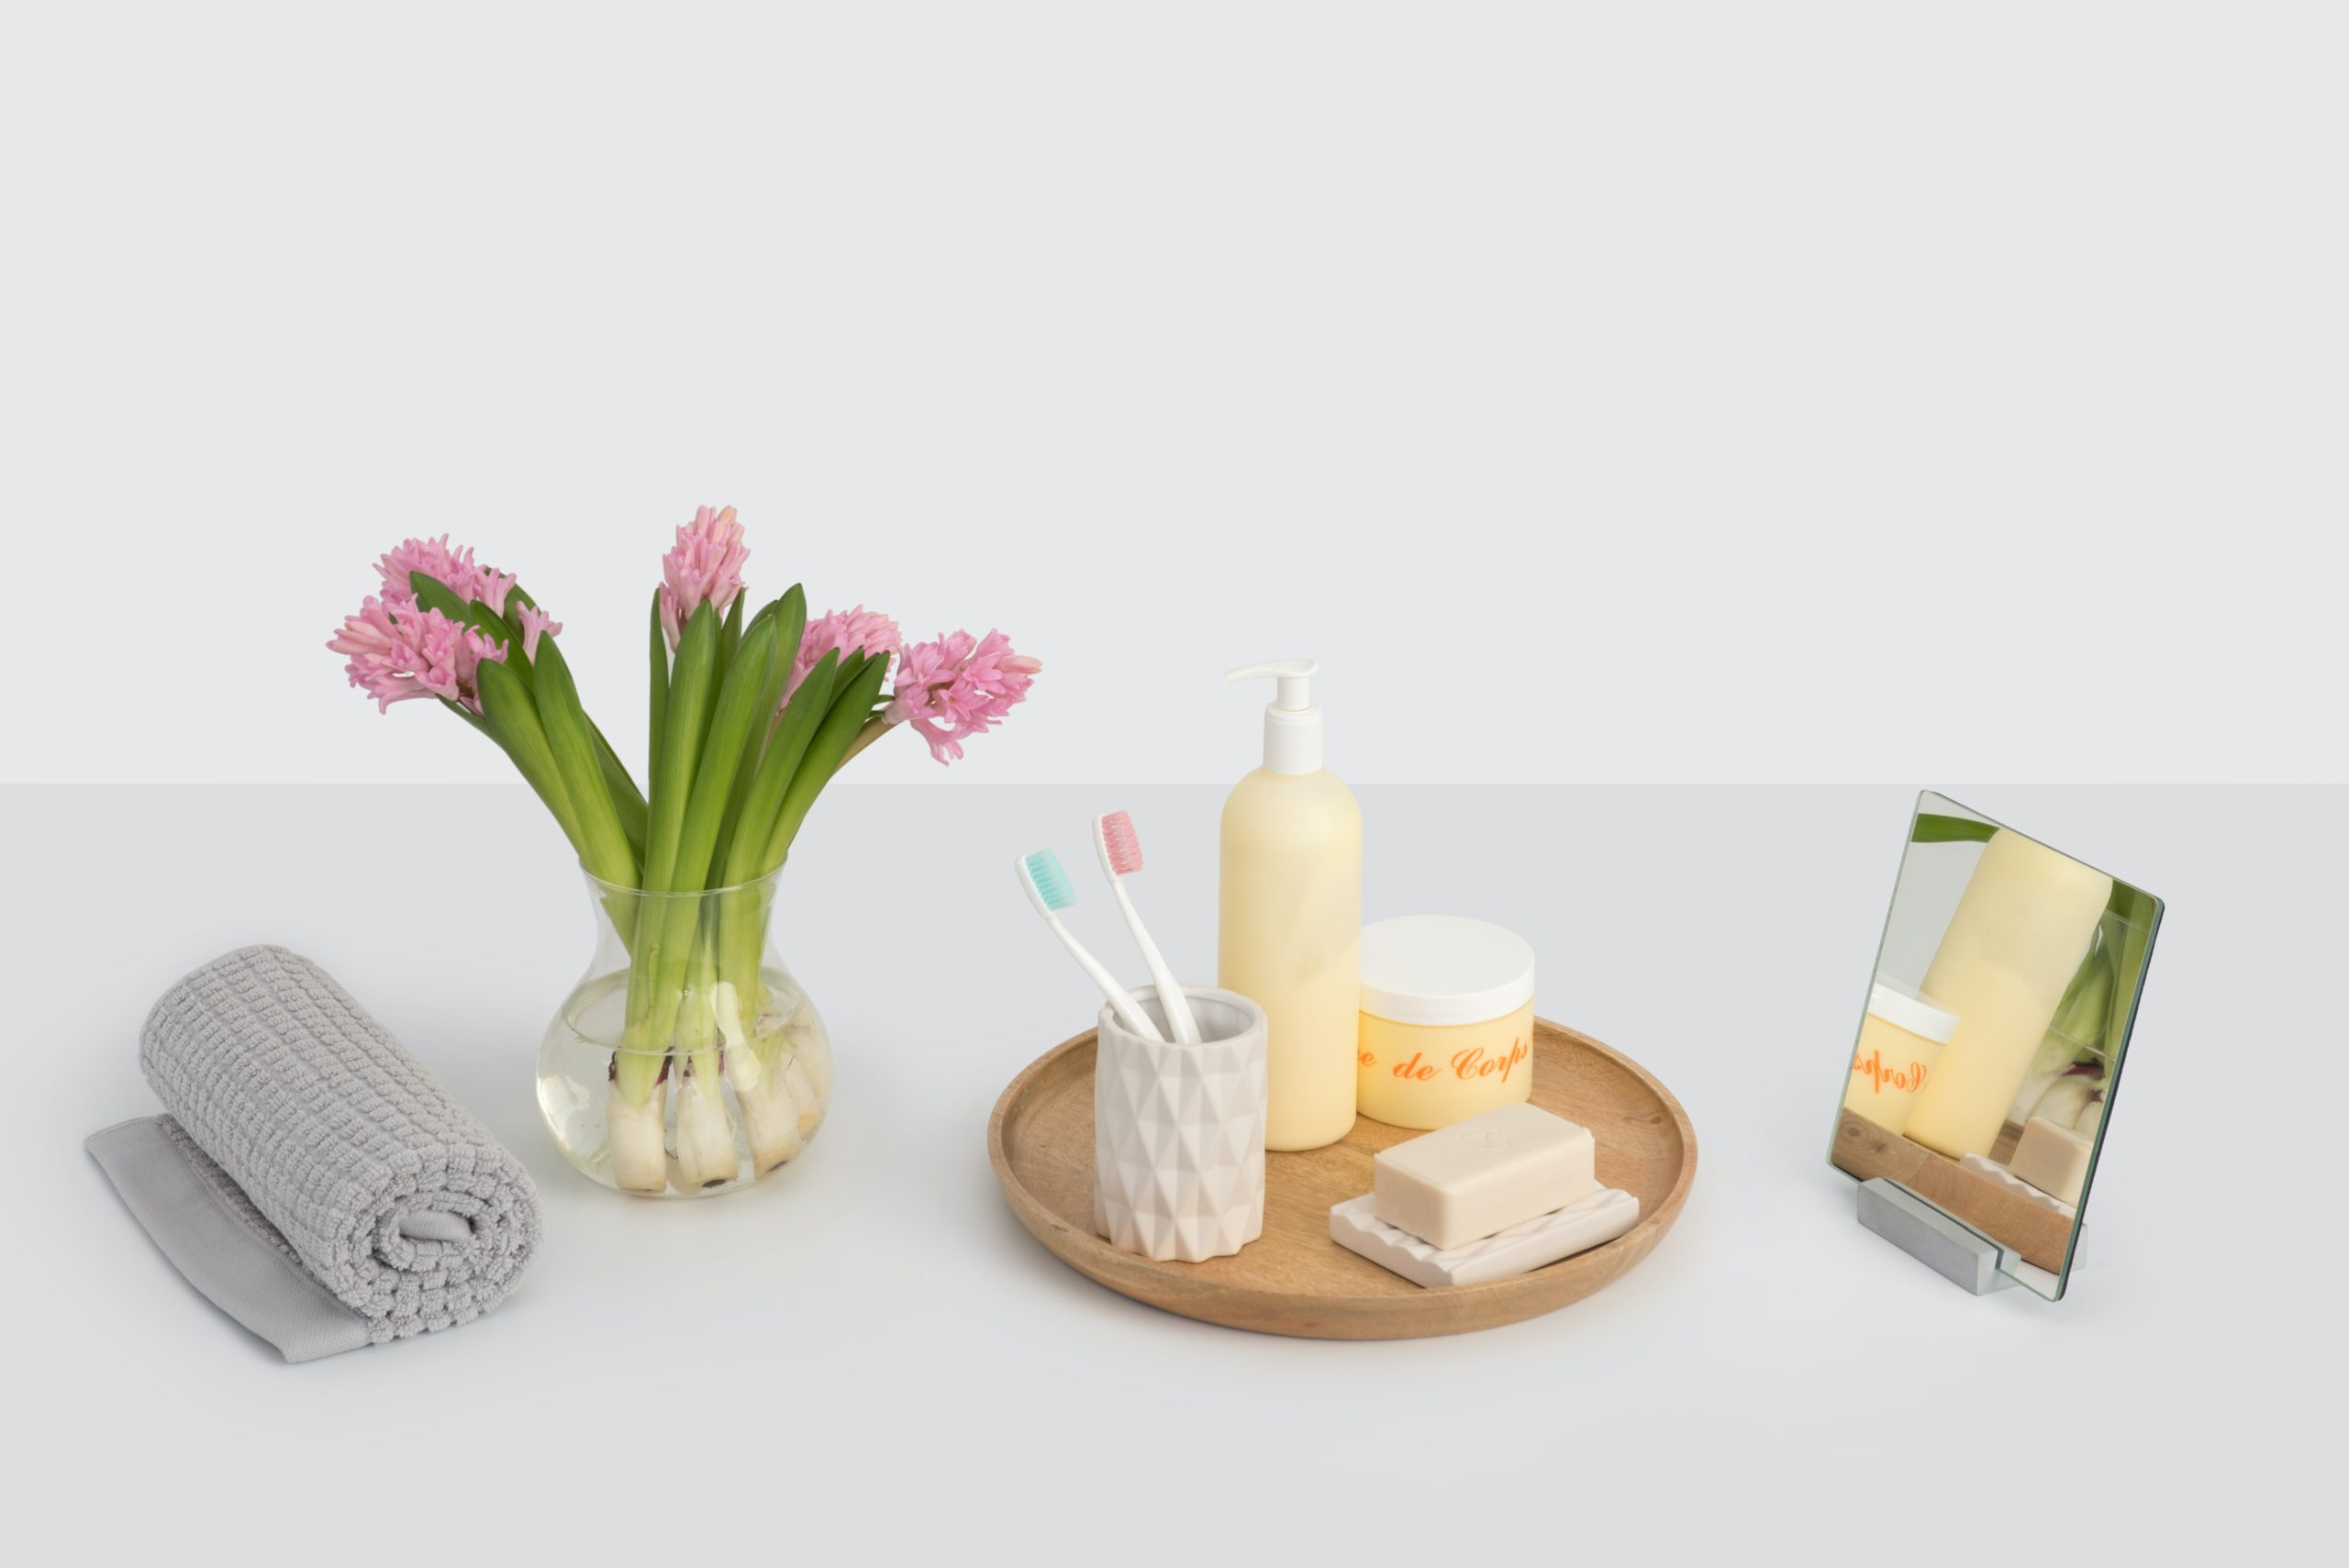 decorative bathroom display with toothbrushes and soaps with grey backdrop